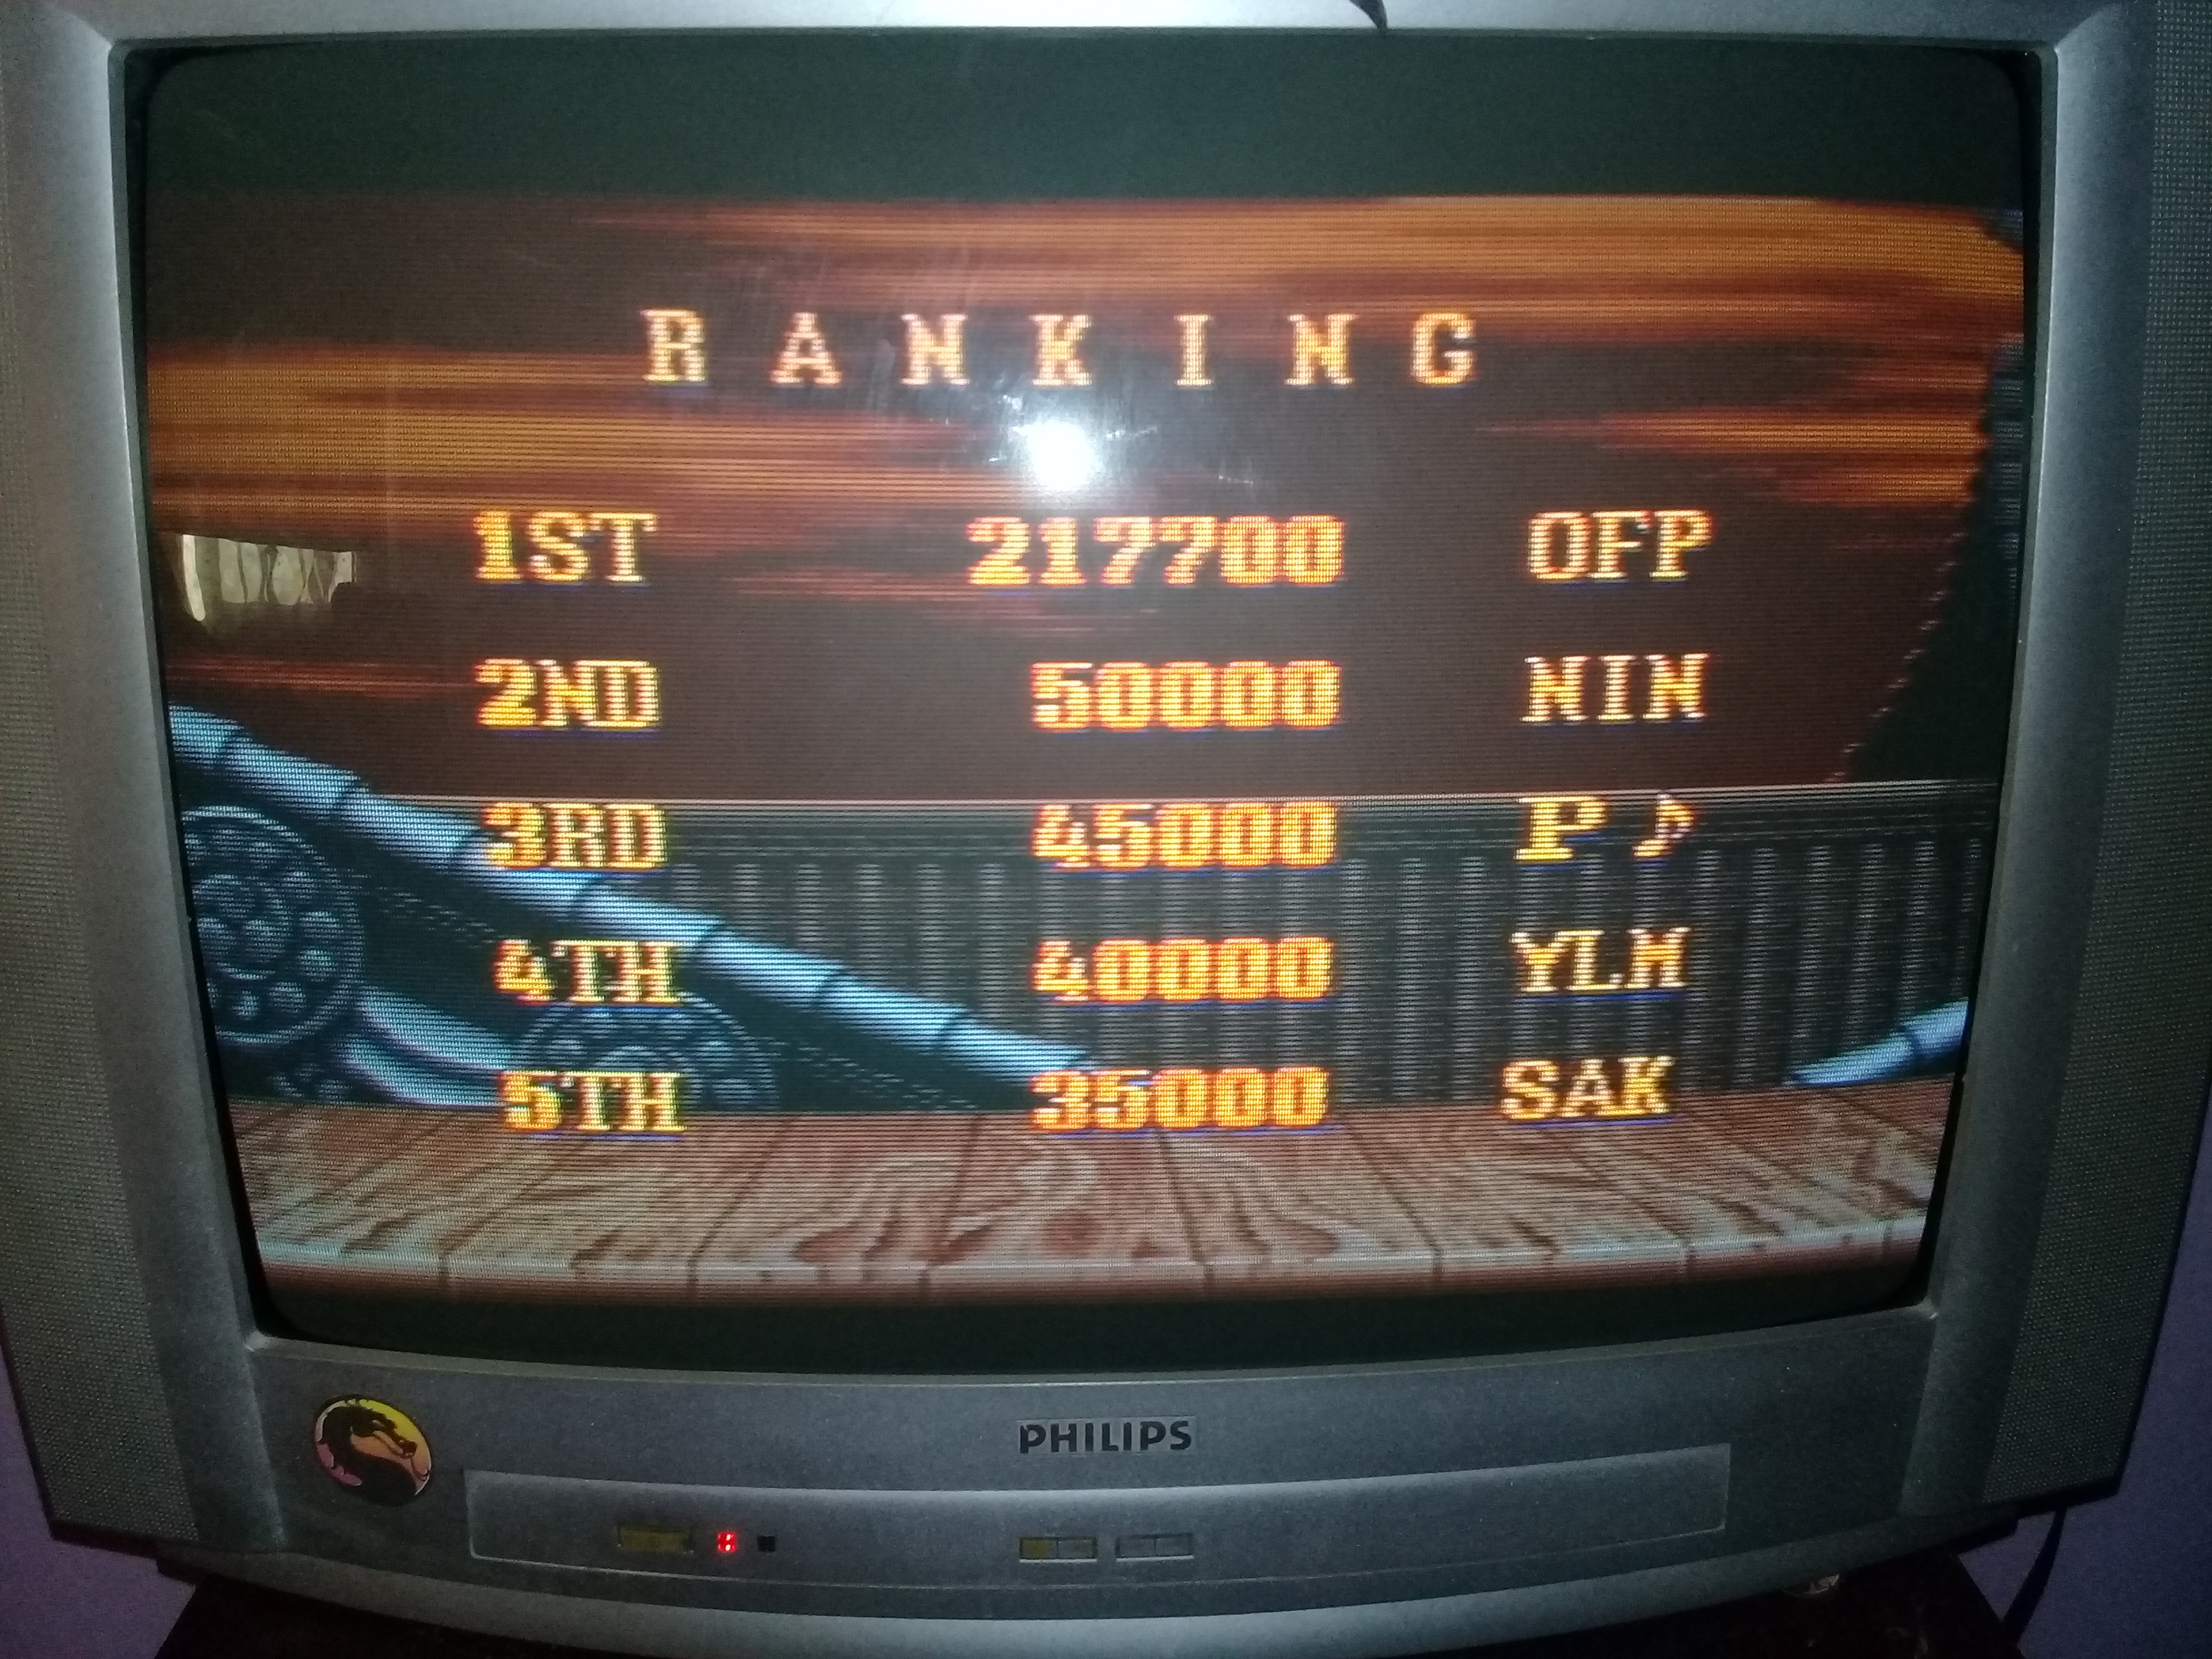 omargeddon: Street Fighter II: The World Warrior [Difficulty 1] (SNES/Super Famicom) 217,700 points on 2020-05-07 19:32:15